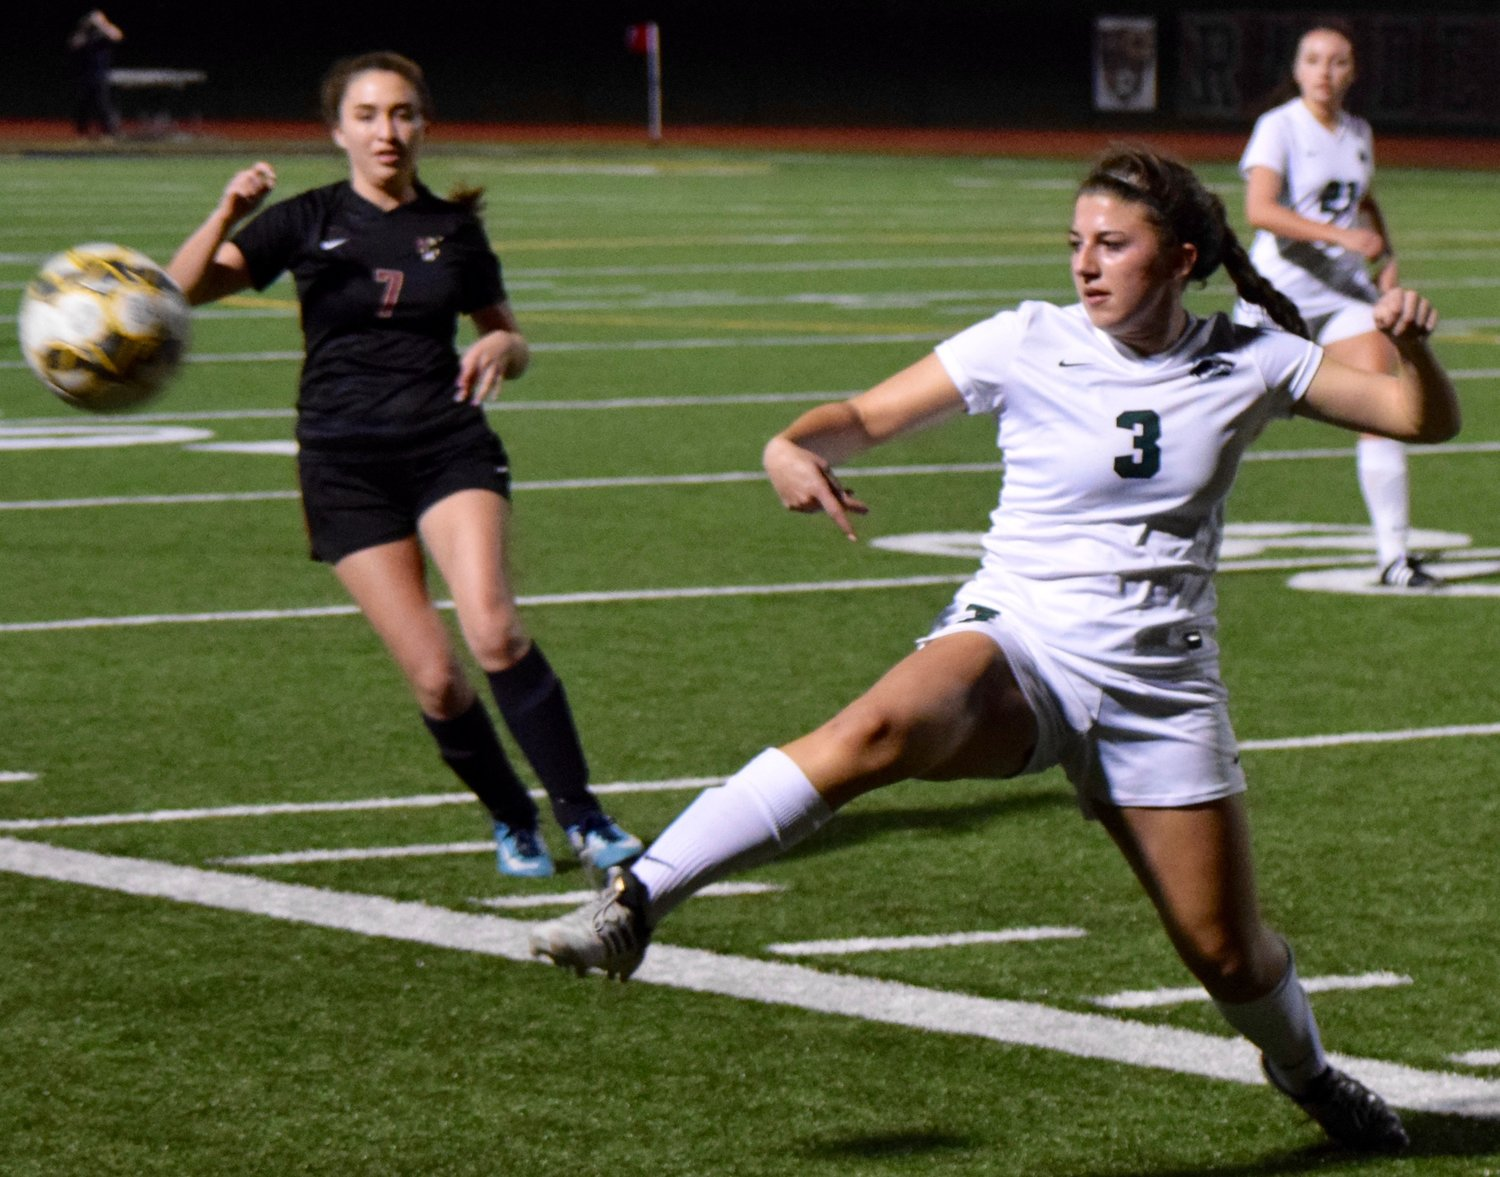 Cedar Park and Carly Rowe beat Rouse 4-1 on Friday night.